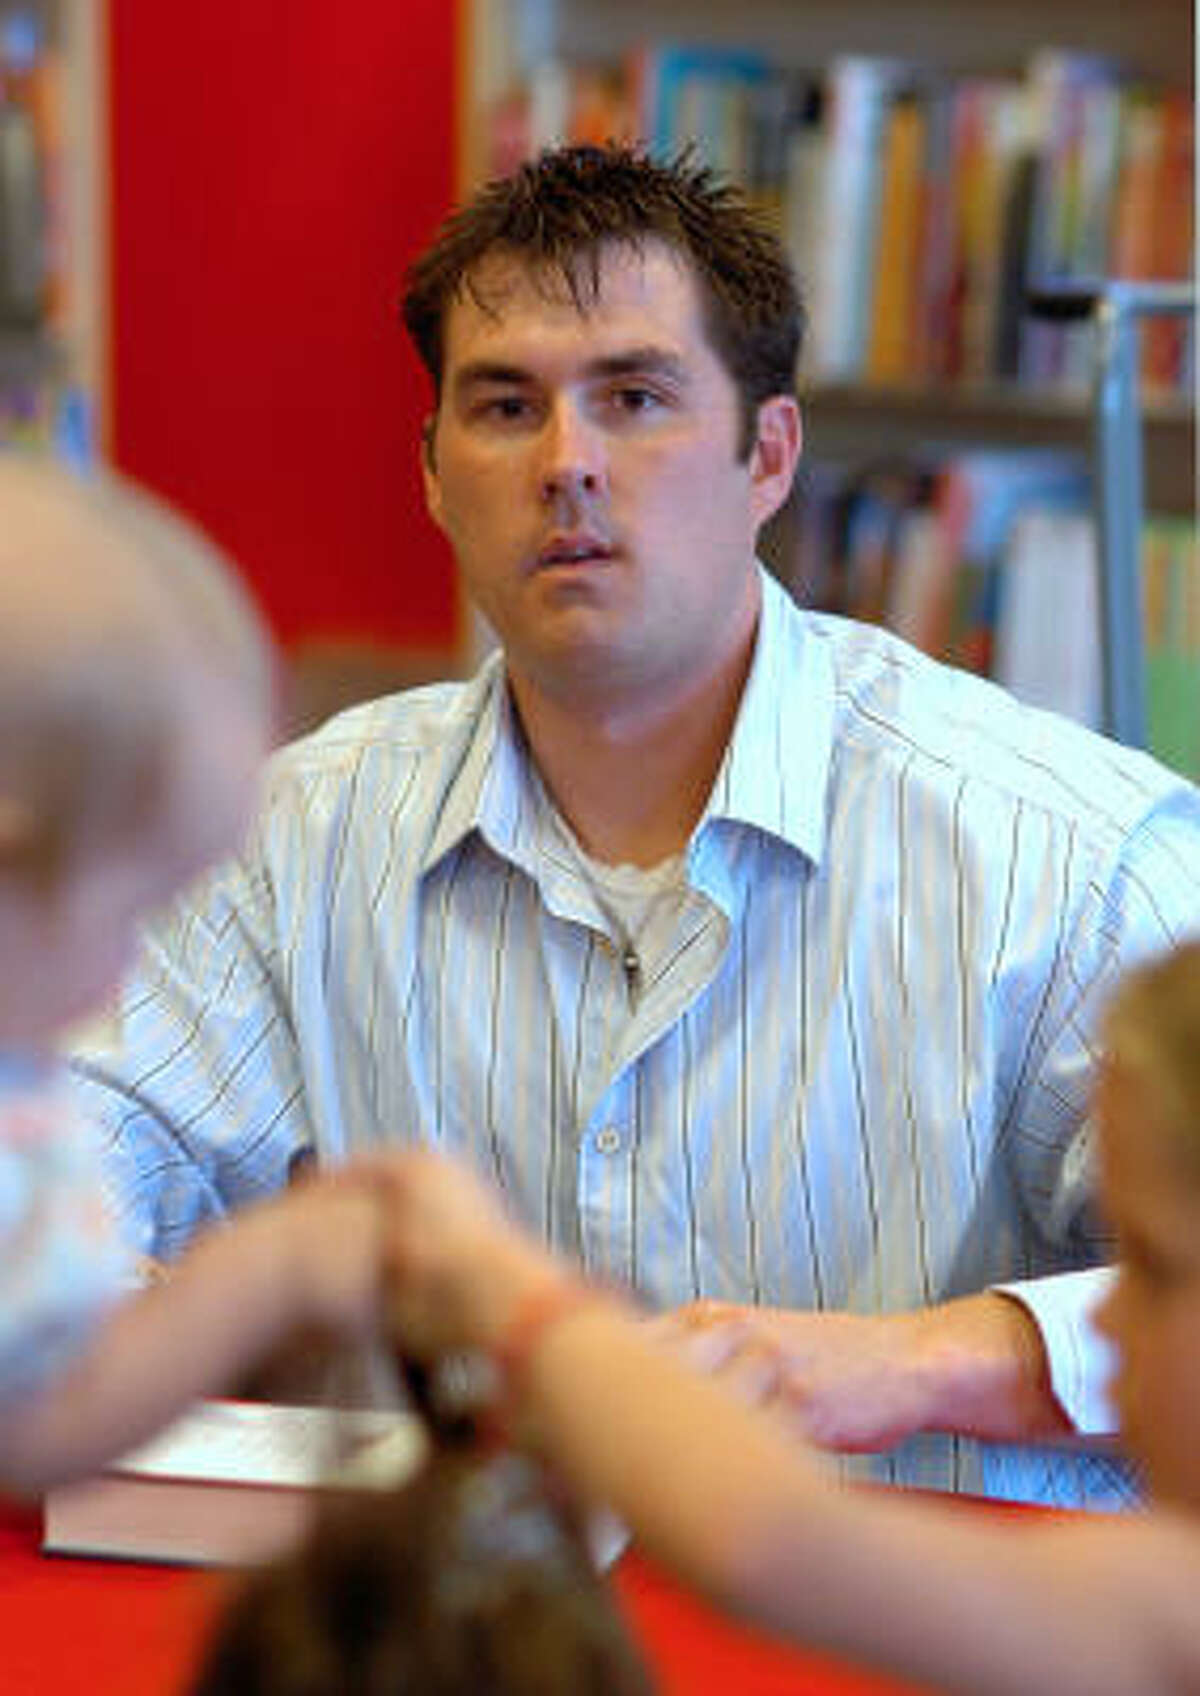 Marcus Luttrell, shown at a book signing, said the attack on his dog pushed him into a place he didn't want to be in.